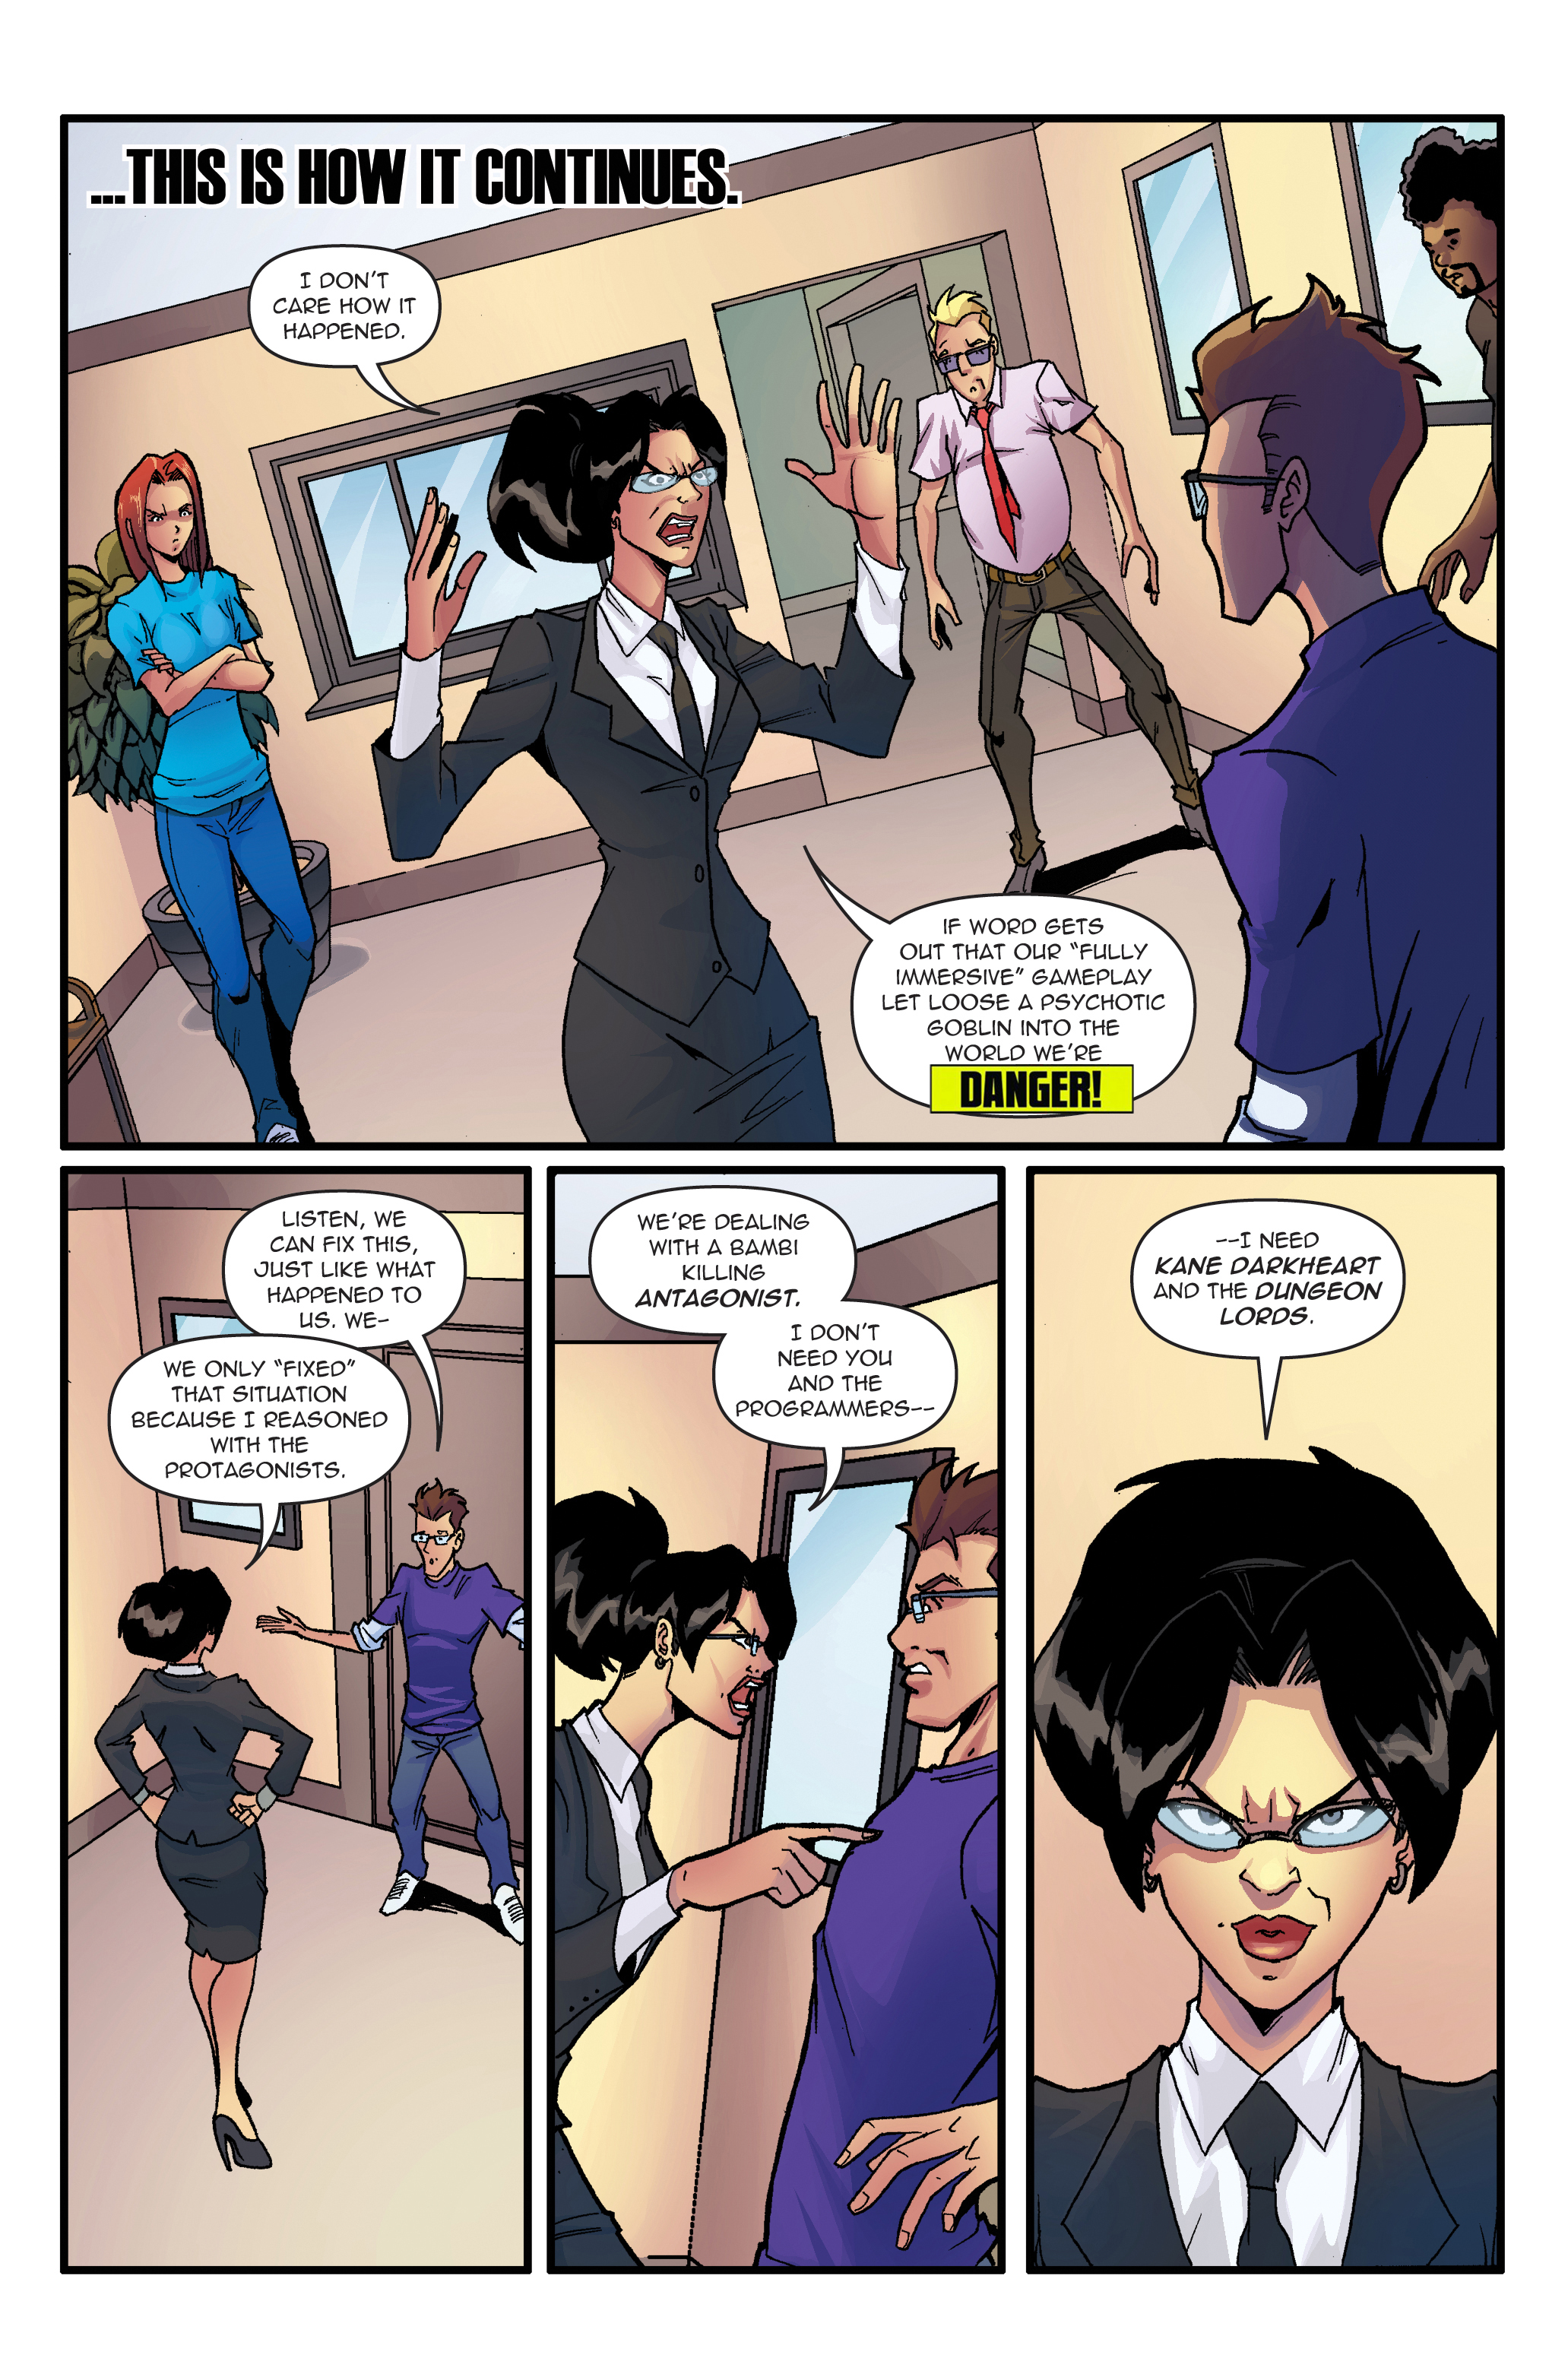 Double Jumpers Full Circle Jerks #1 Page 2.jpg